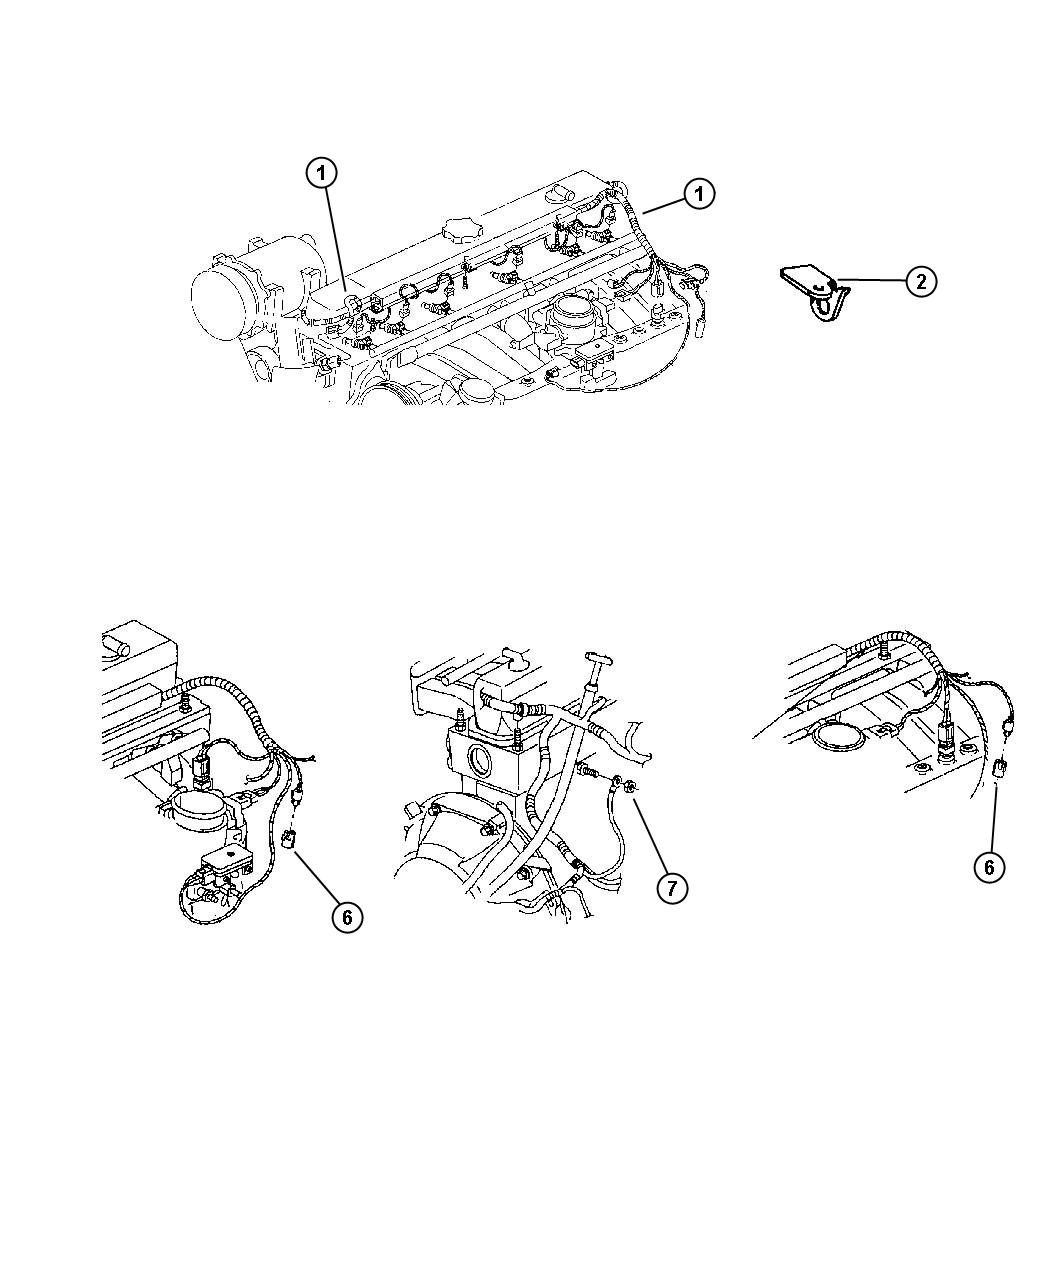 1998 Jeep Wrangler Wiring--Engine and Related Parts.